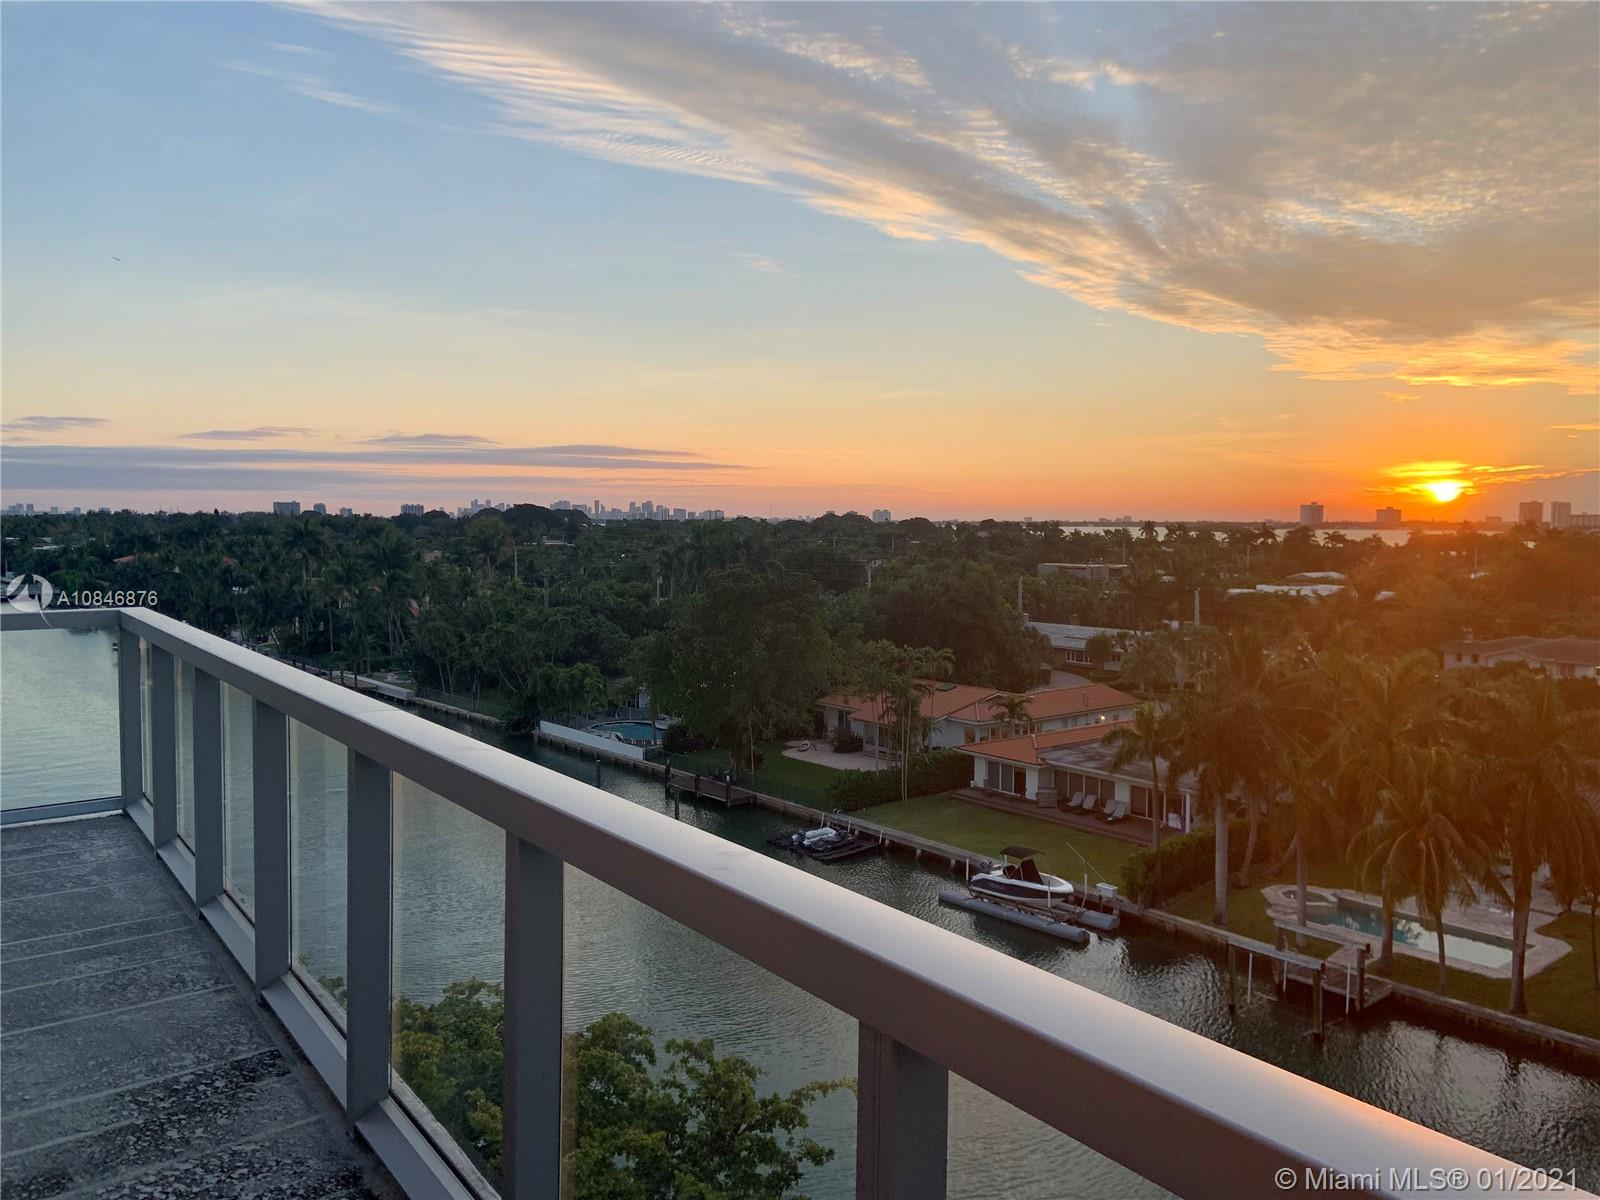 Live in one of a kind penthouse in an amazing boutique building at one of the safest neighborhoods in Florida, located a few blocks away from one of the best public schools (A+) in the Miami/Dade area. Plenty of space and sunlight, this 3beds/3baths, it has walk-in closets and an open fully equipped kitchen. Oversized corner unit looking the Biscayne Bay and the City Skyline. Enjoy boating, fishing, paddle-boarding or kayaking straight out of your backyard and finish your day contemplating breathtaking sunset views from your balcony. Heated pool, spa, and BBQ area on the rooftop with bay view. Boat docks, big storage room. Short walk to the beach,Bal Harbour shops, and restaurants. Also Available Furnished price differs.